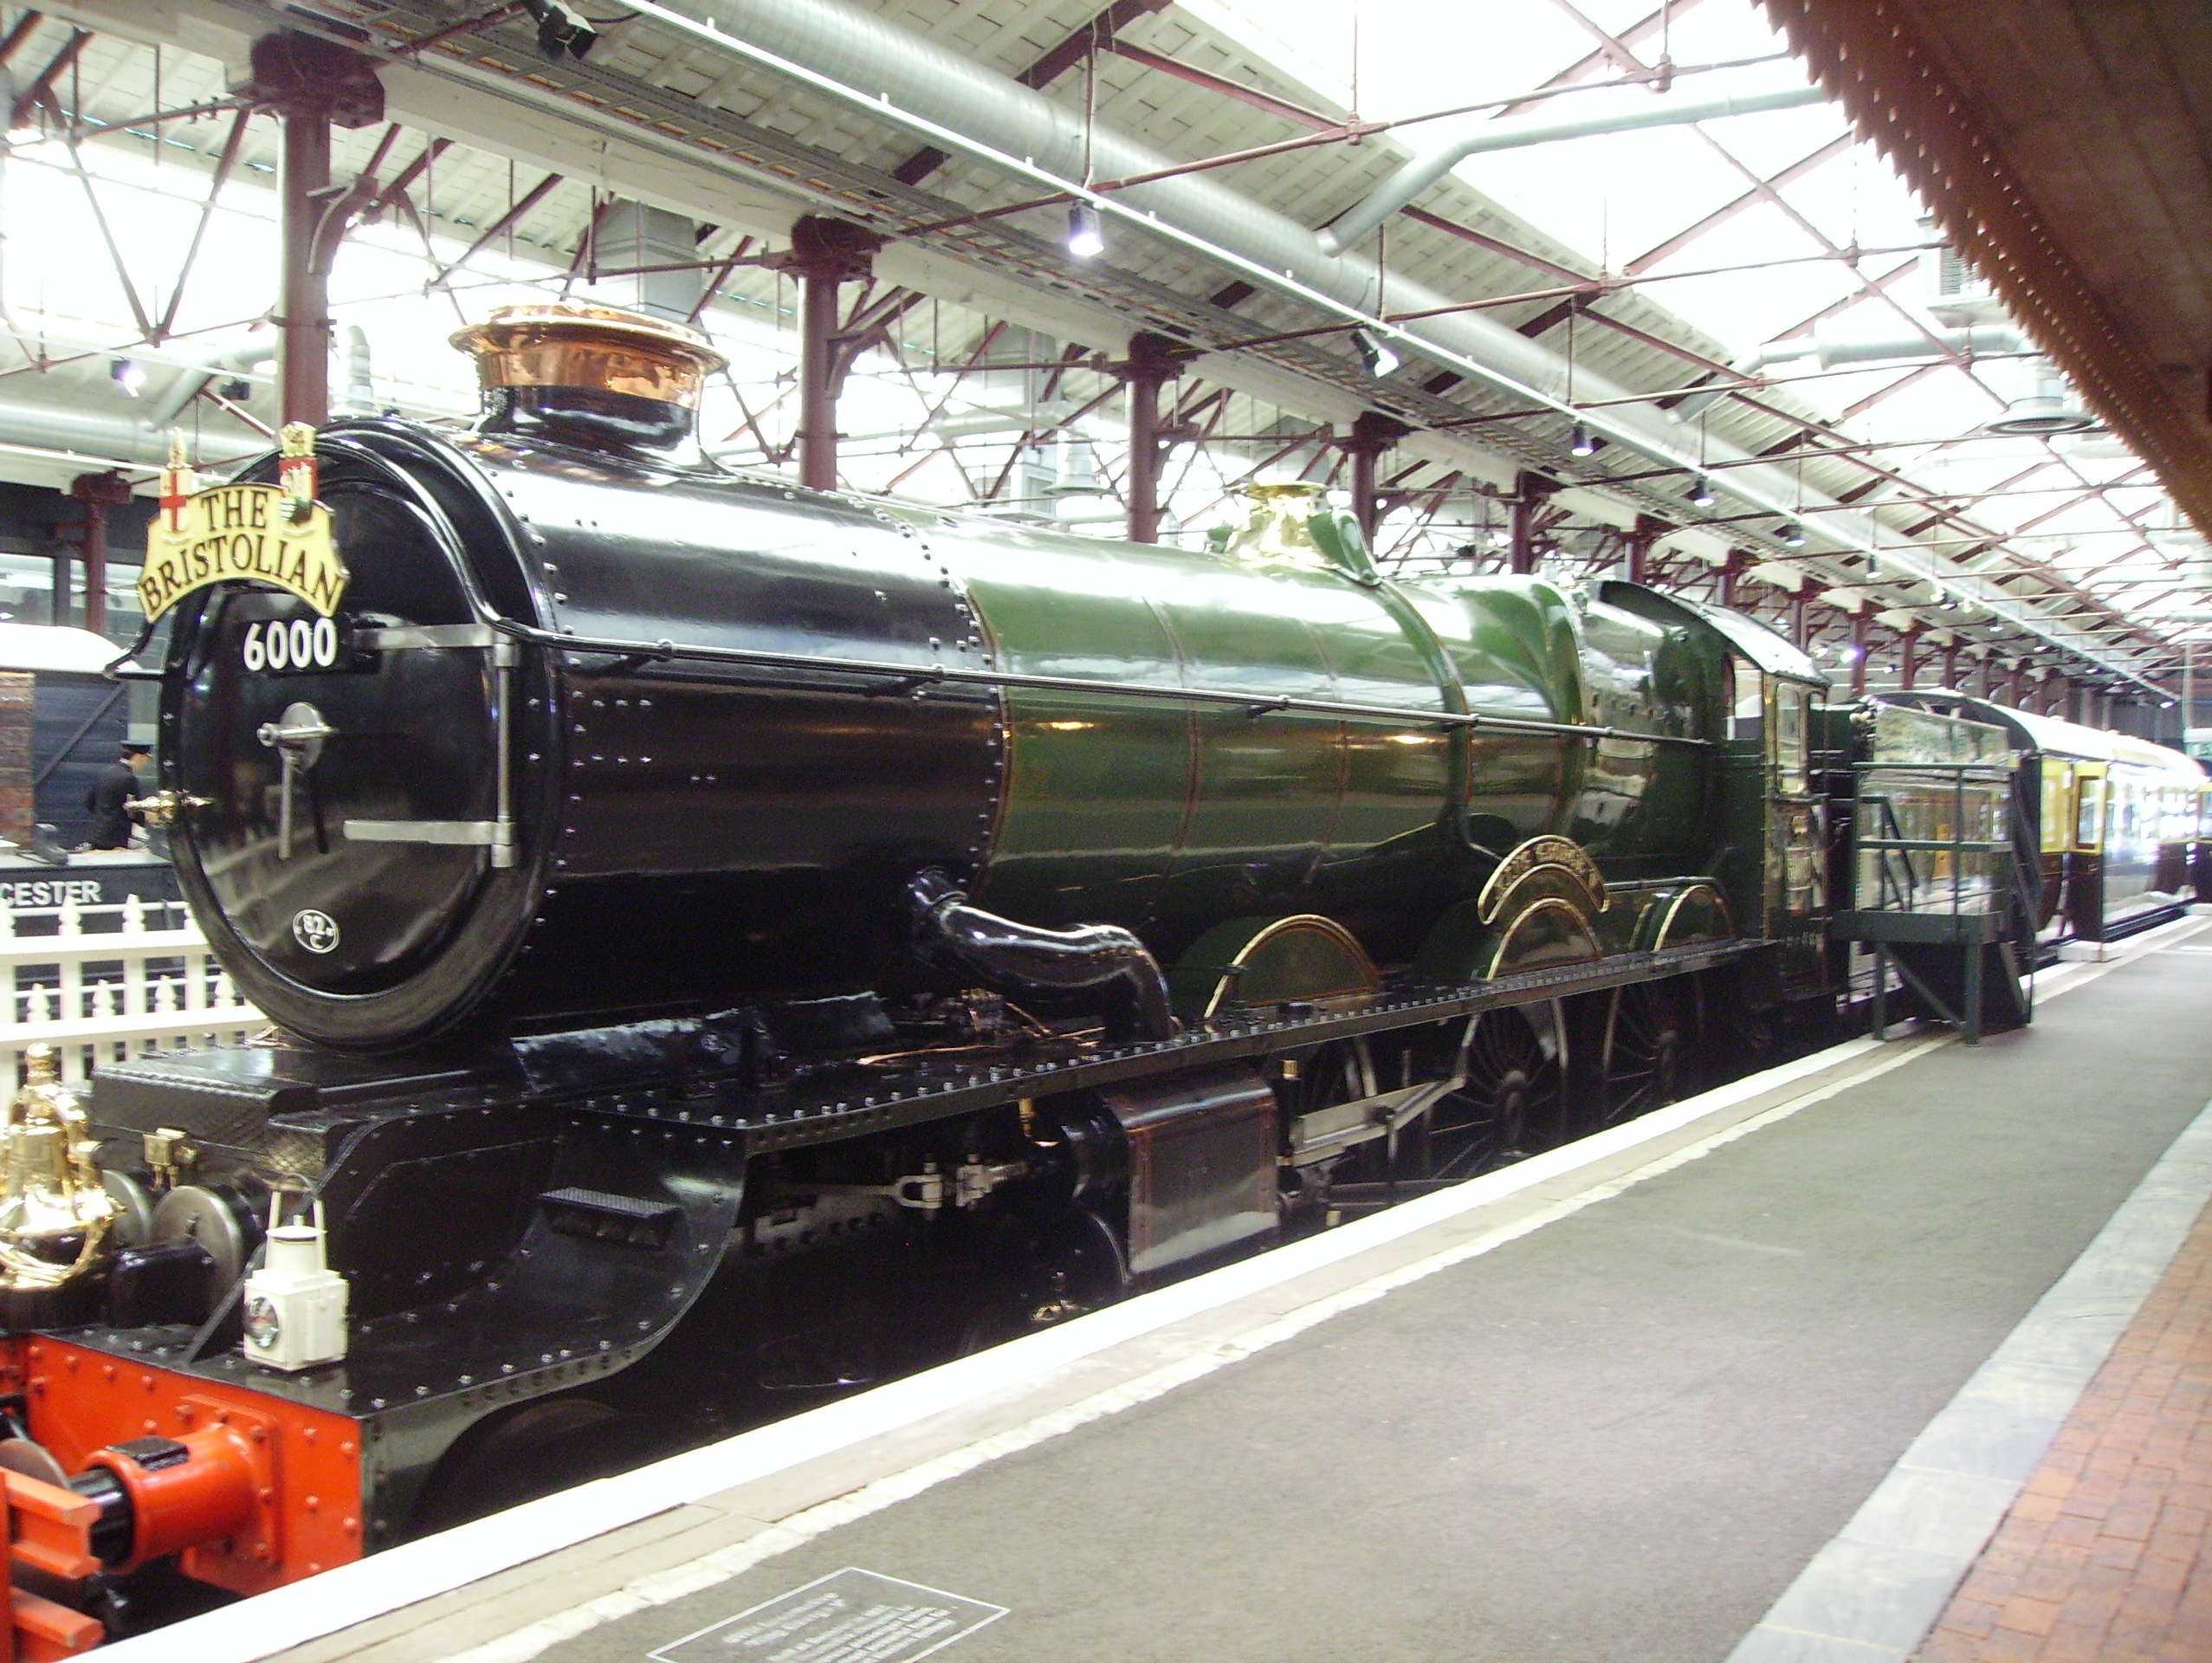 Reasons to wend your way in Wiltshire, England - Museum of the Great Western Railway